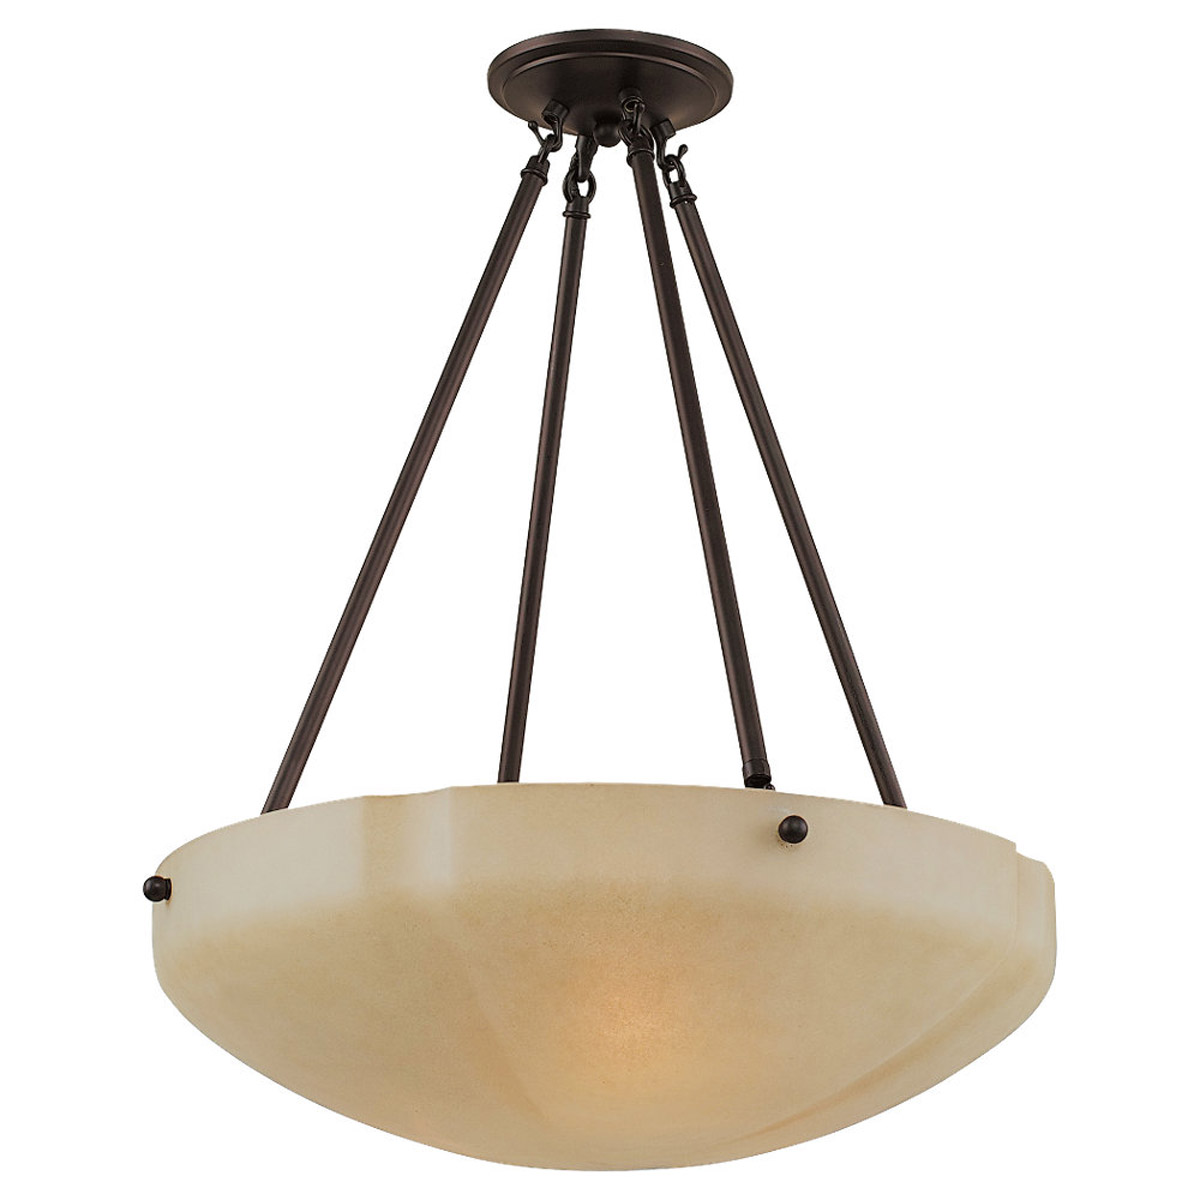 Sea Gull Lighting Century 3 Light Pendant in Heirloom Bronze 65474-782 photo